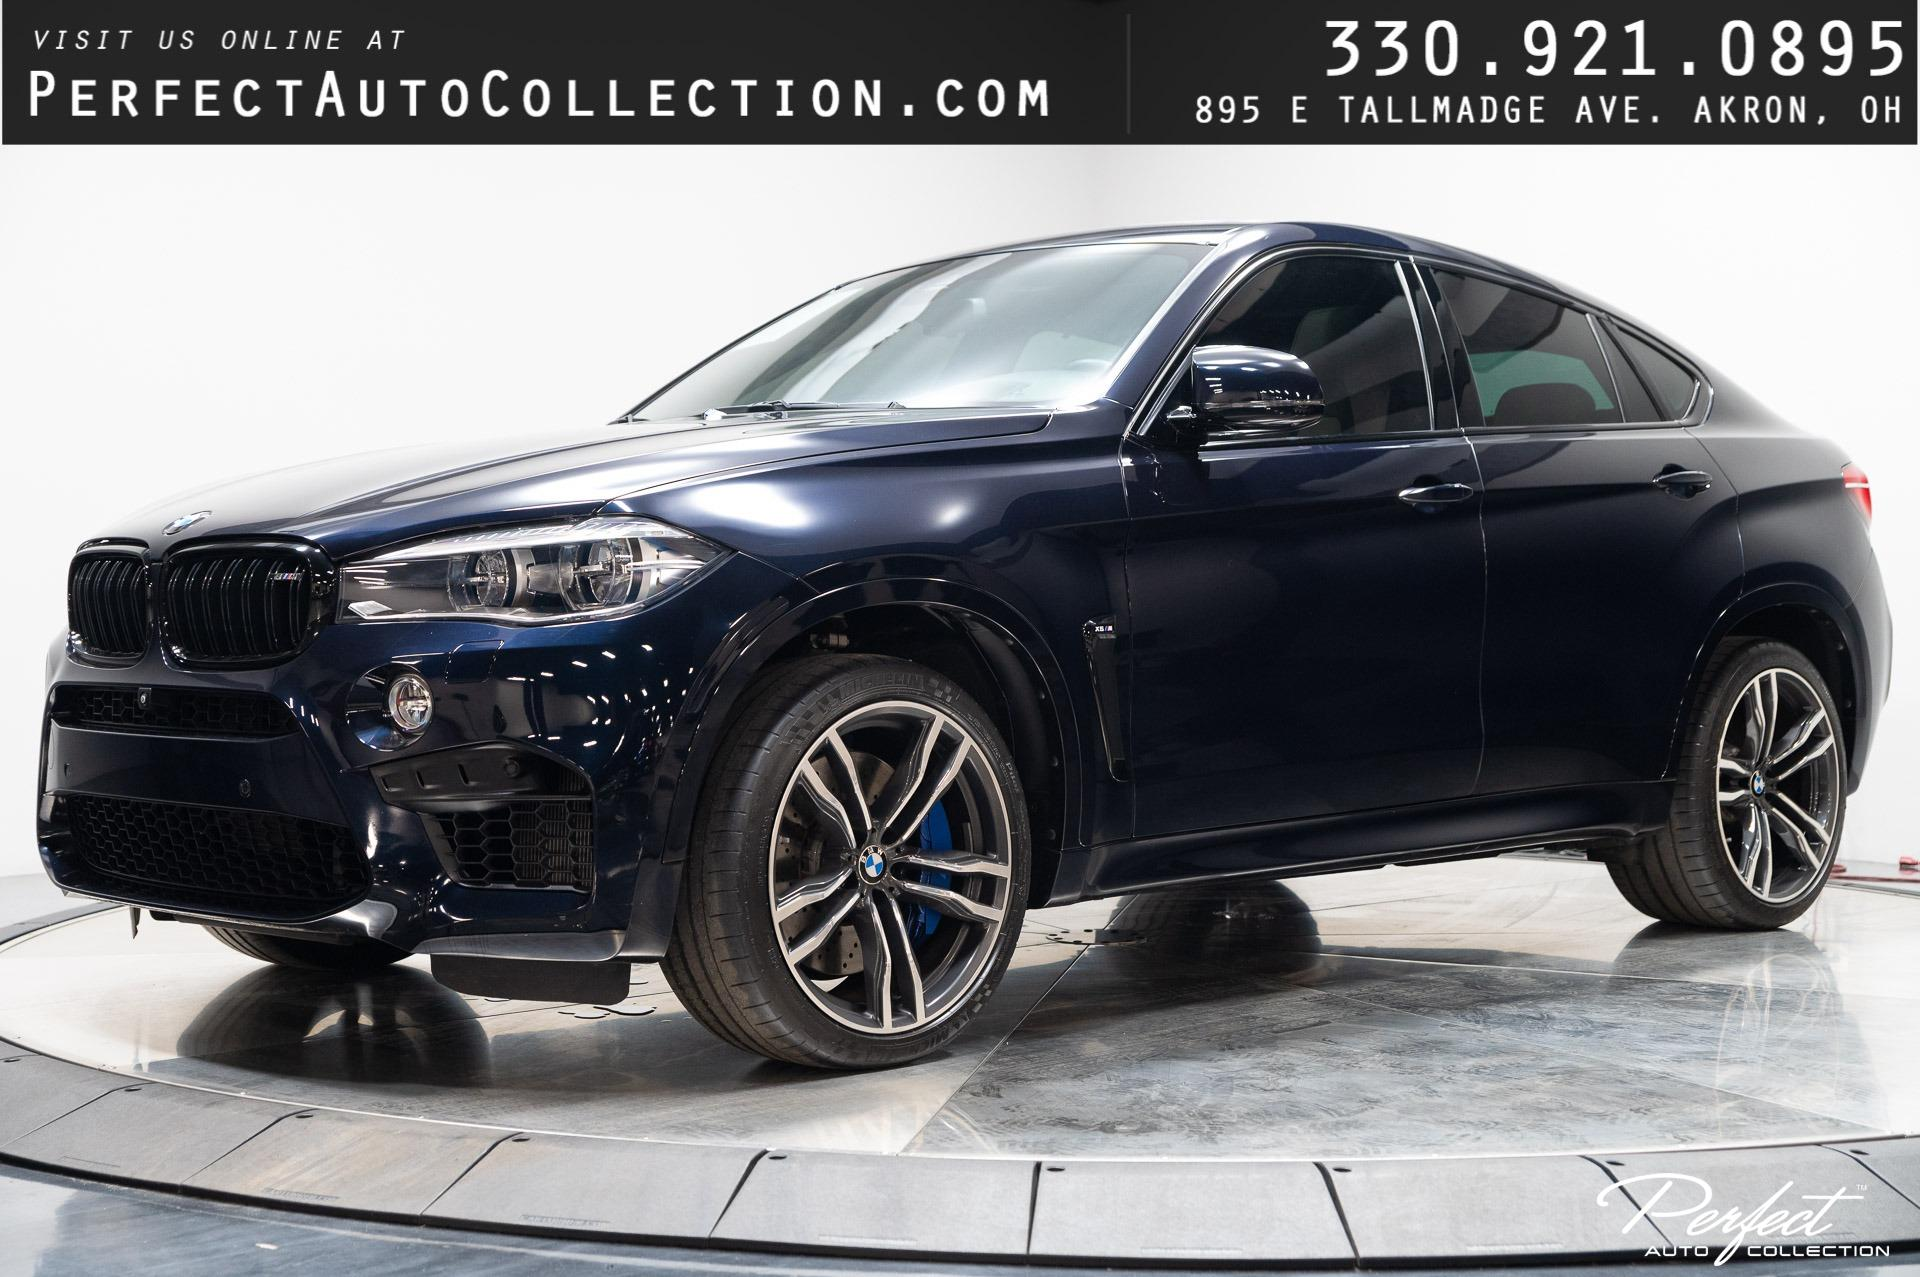 Used 2017 BMW X6 M for sale $68,495 at Perfect Auto Collection in Akron OH 44310 1